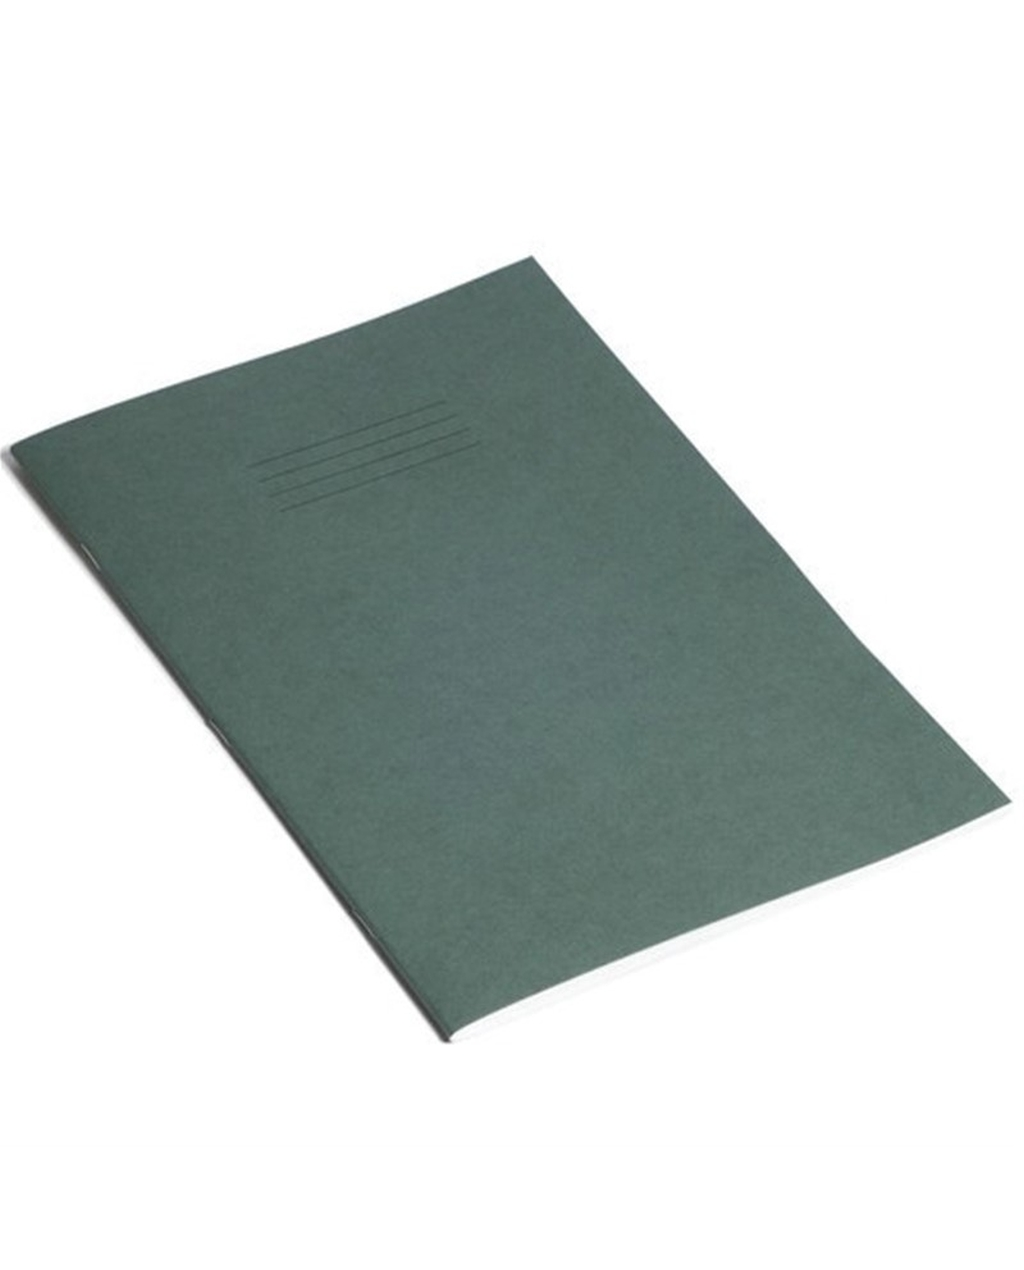 Exercise Book A4 (297 x 210mm) Dark Green Cover 8mm Ruled & Margin 80 Pages